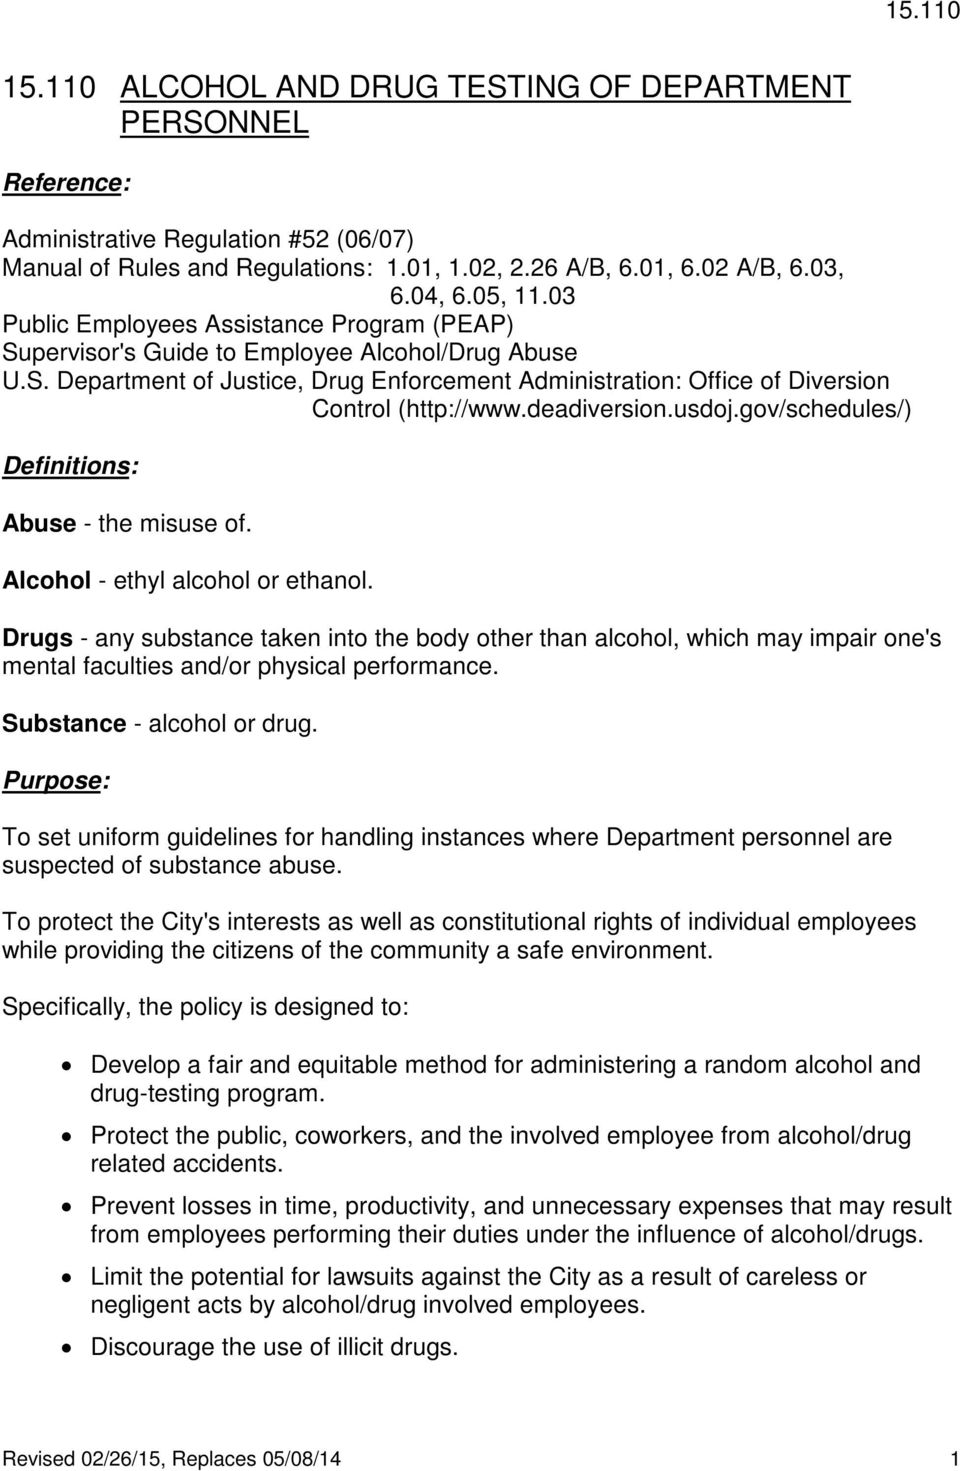 deadiversion.usdoj.gov/schedules/) Definitions: Abuse - the misuse of. Alcohol - ethyl alcohol or ethanol.